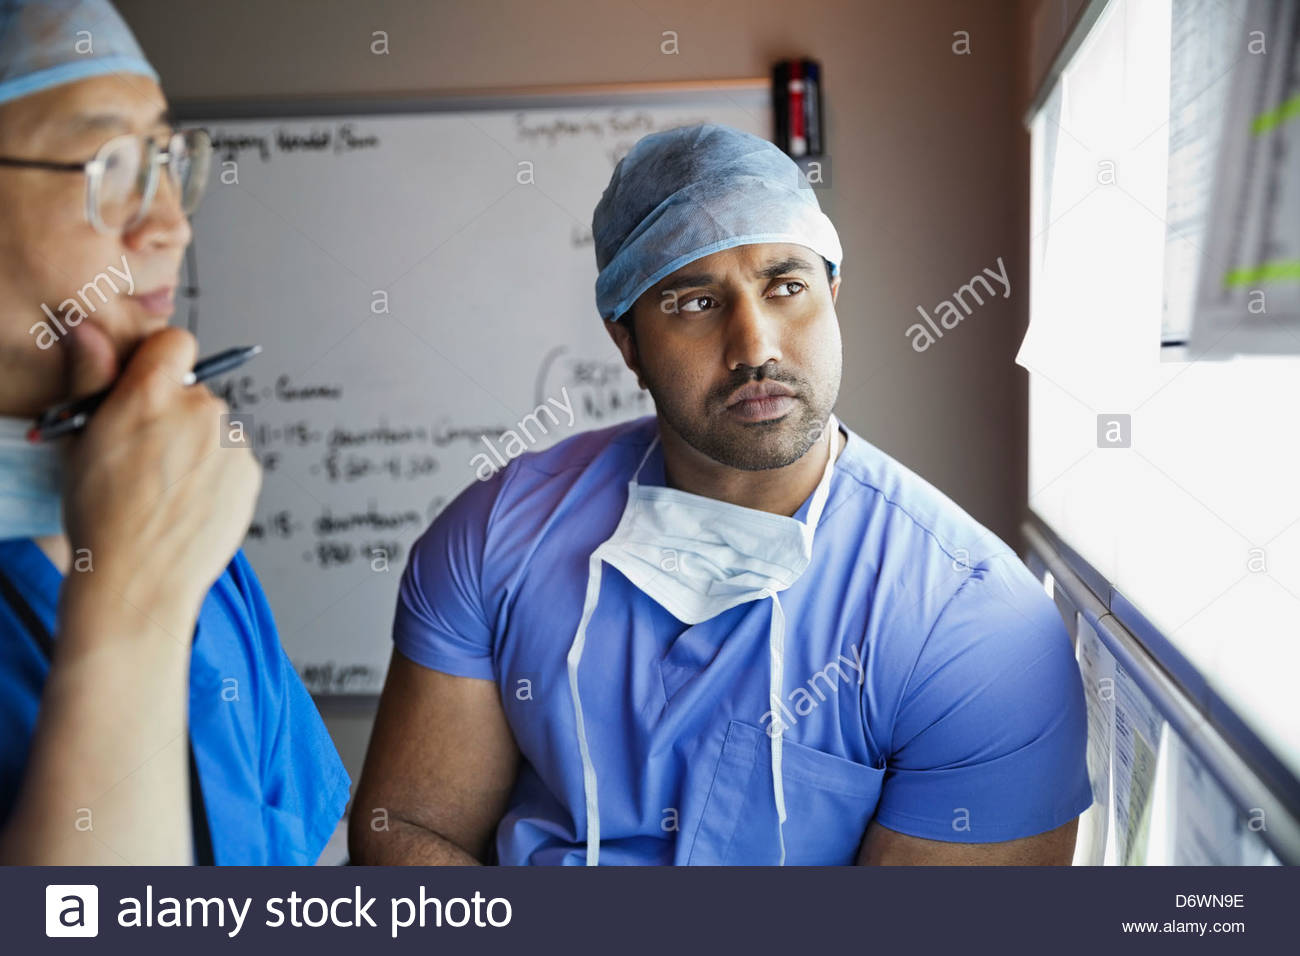 Senior surgeon and doctor examining report in hospital - Stock Image